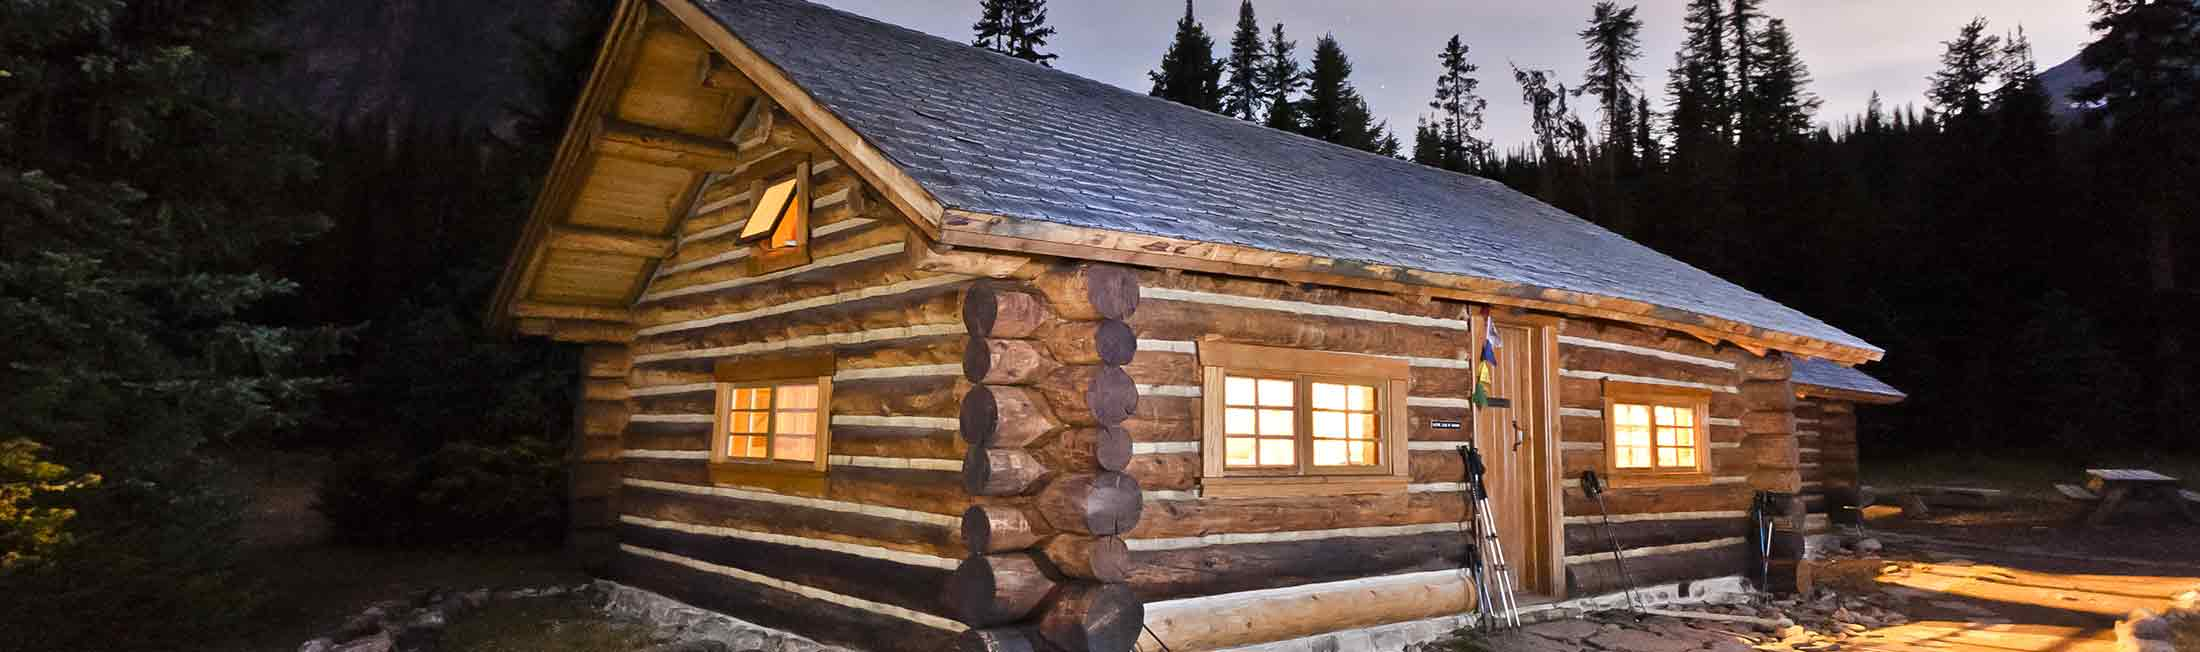 cabins missoula montana destination in rentals cabin